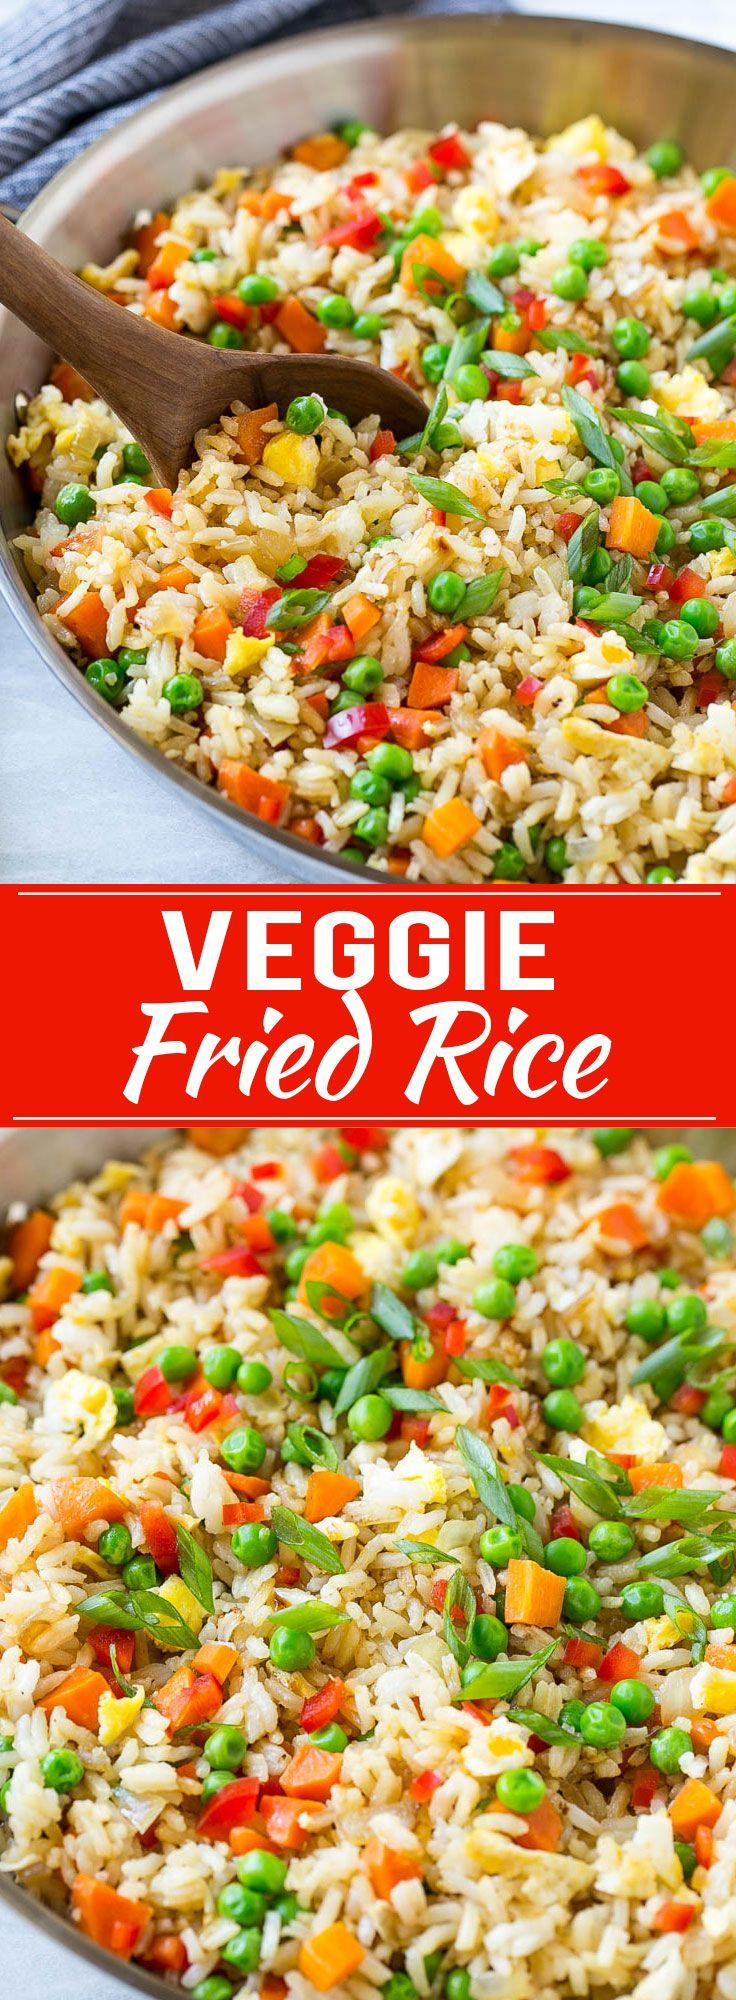 This recipe for veggie fried rice is chock full of colorful veggies and is ready in just 20 minutes! It's the perfect quick and easy side dish to any P.F. Chang's Home Menu® skillet meal that the whole family will love. #WokWednesday #sponsored